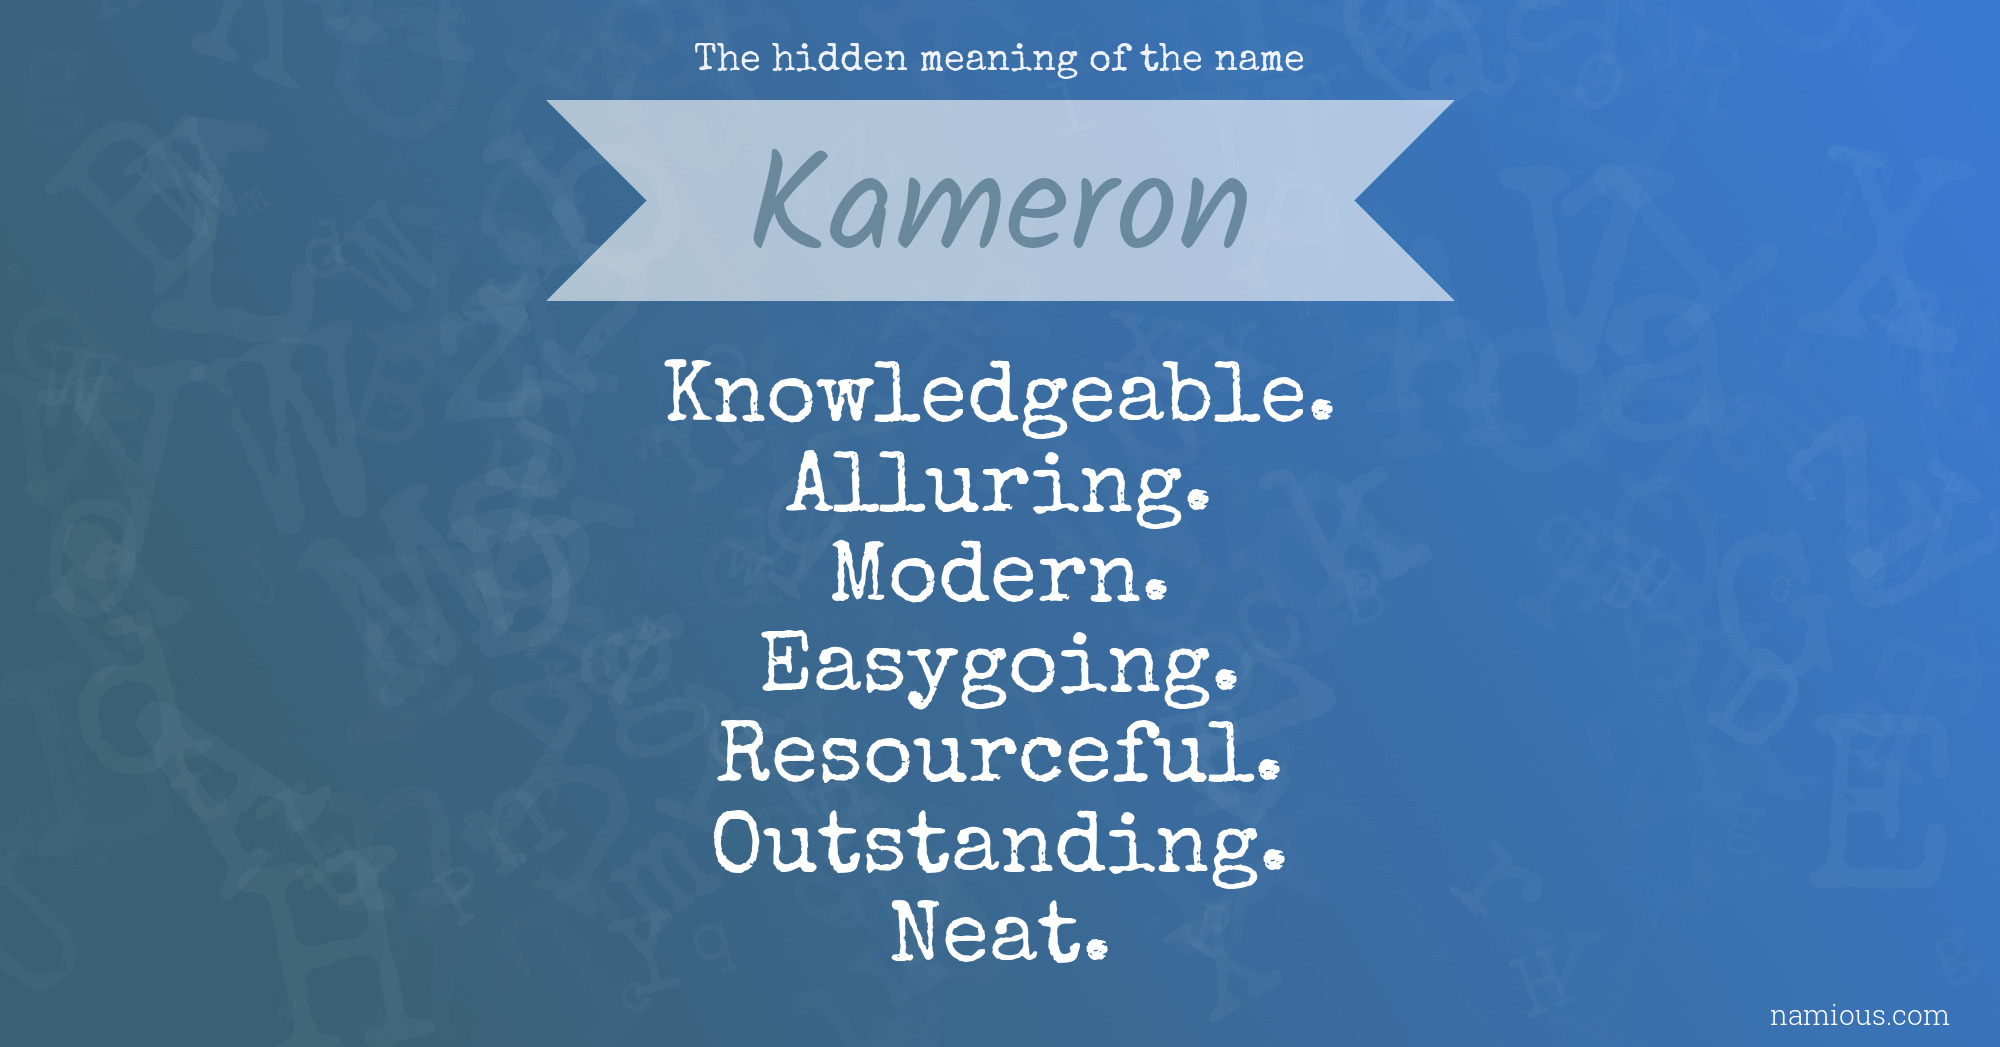 The hidden meaning of the name Kameron | Namious